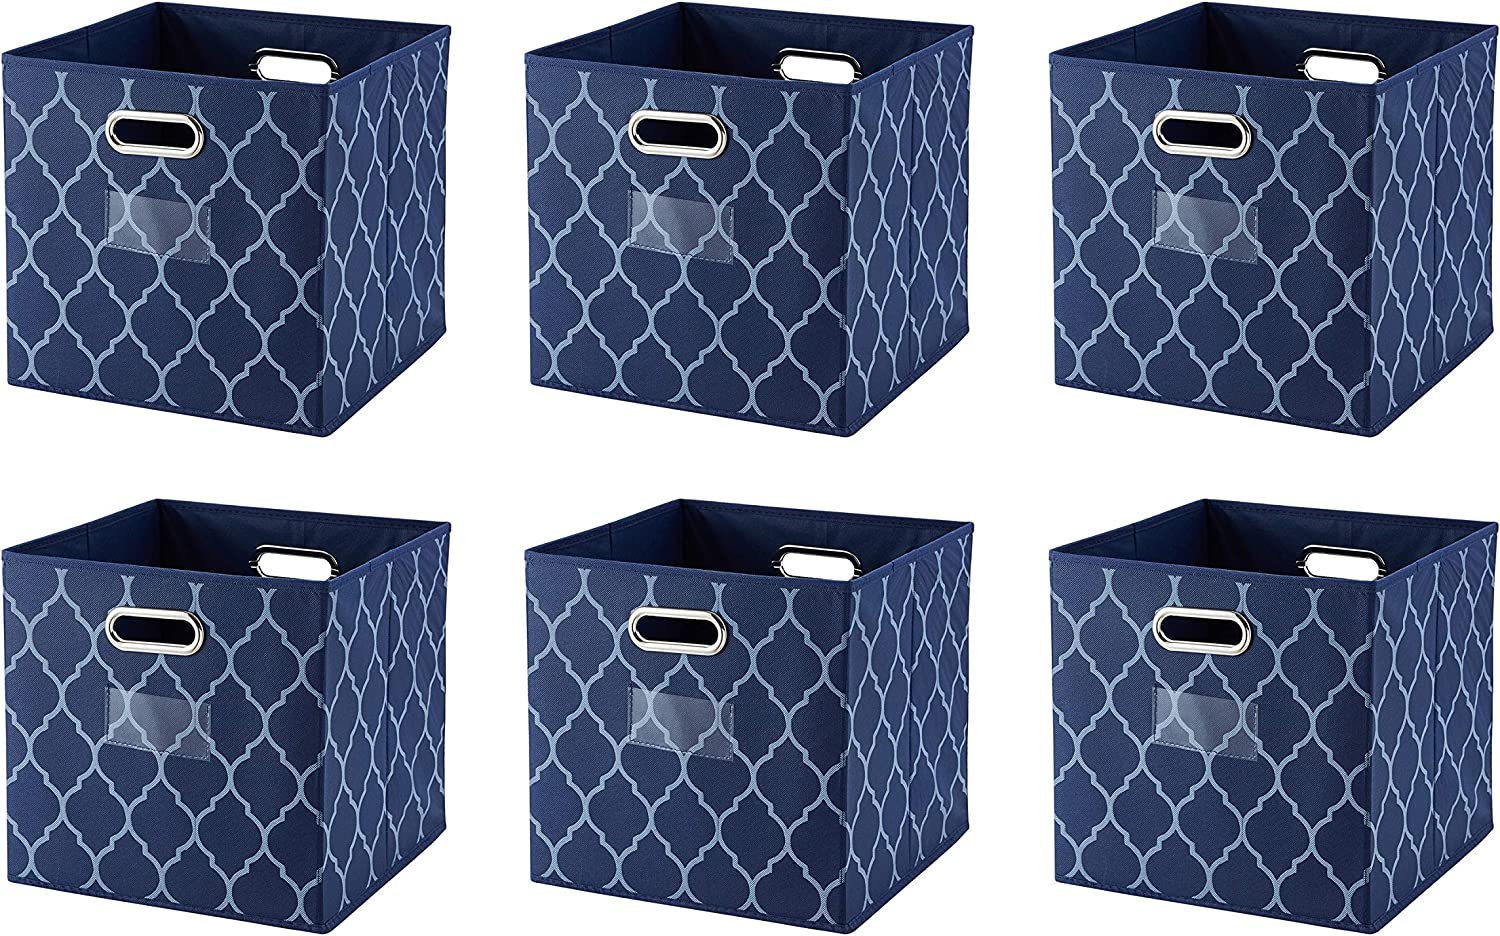 Ornavo Home Foldable Storage Bins Basket Cube Organizer with Dual Handles and Window Pocket - 6 Pack - 12